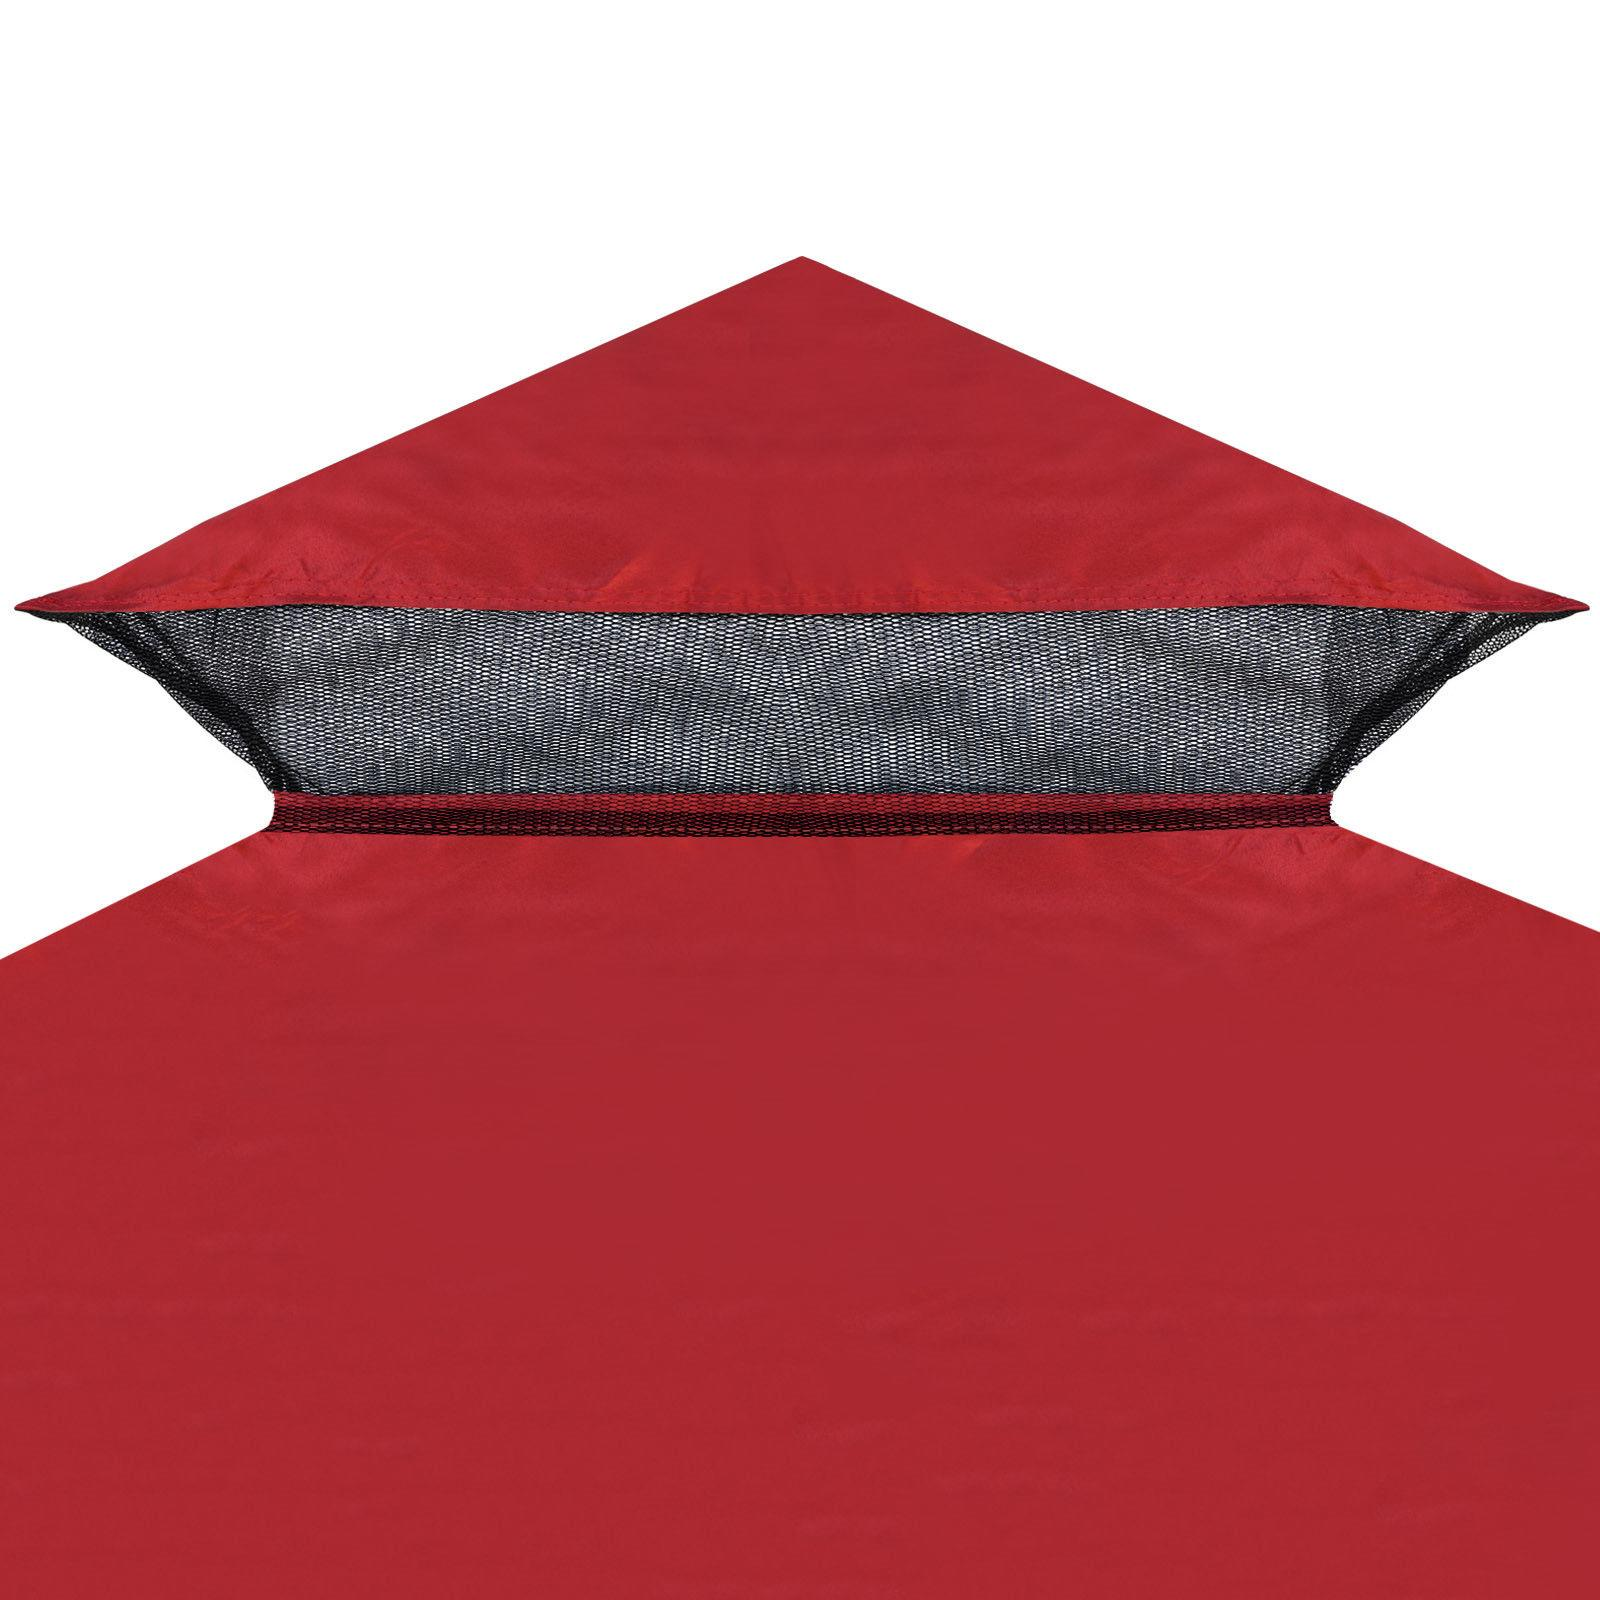 New Replacement Canopy Top Pavilion Sunshade Cover